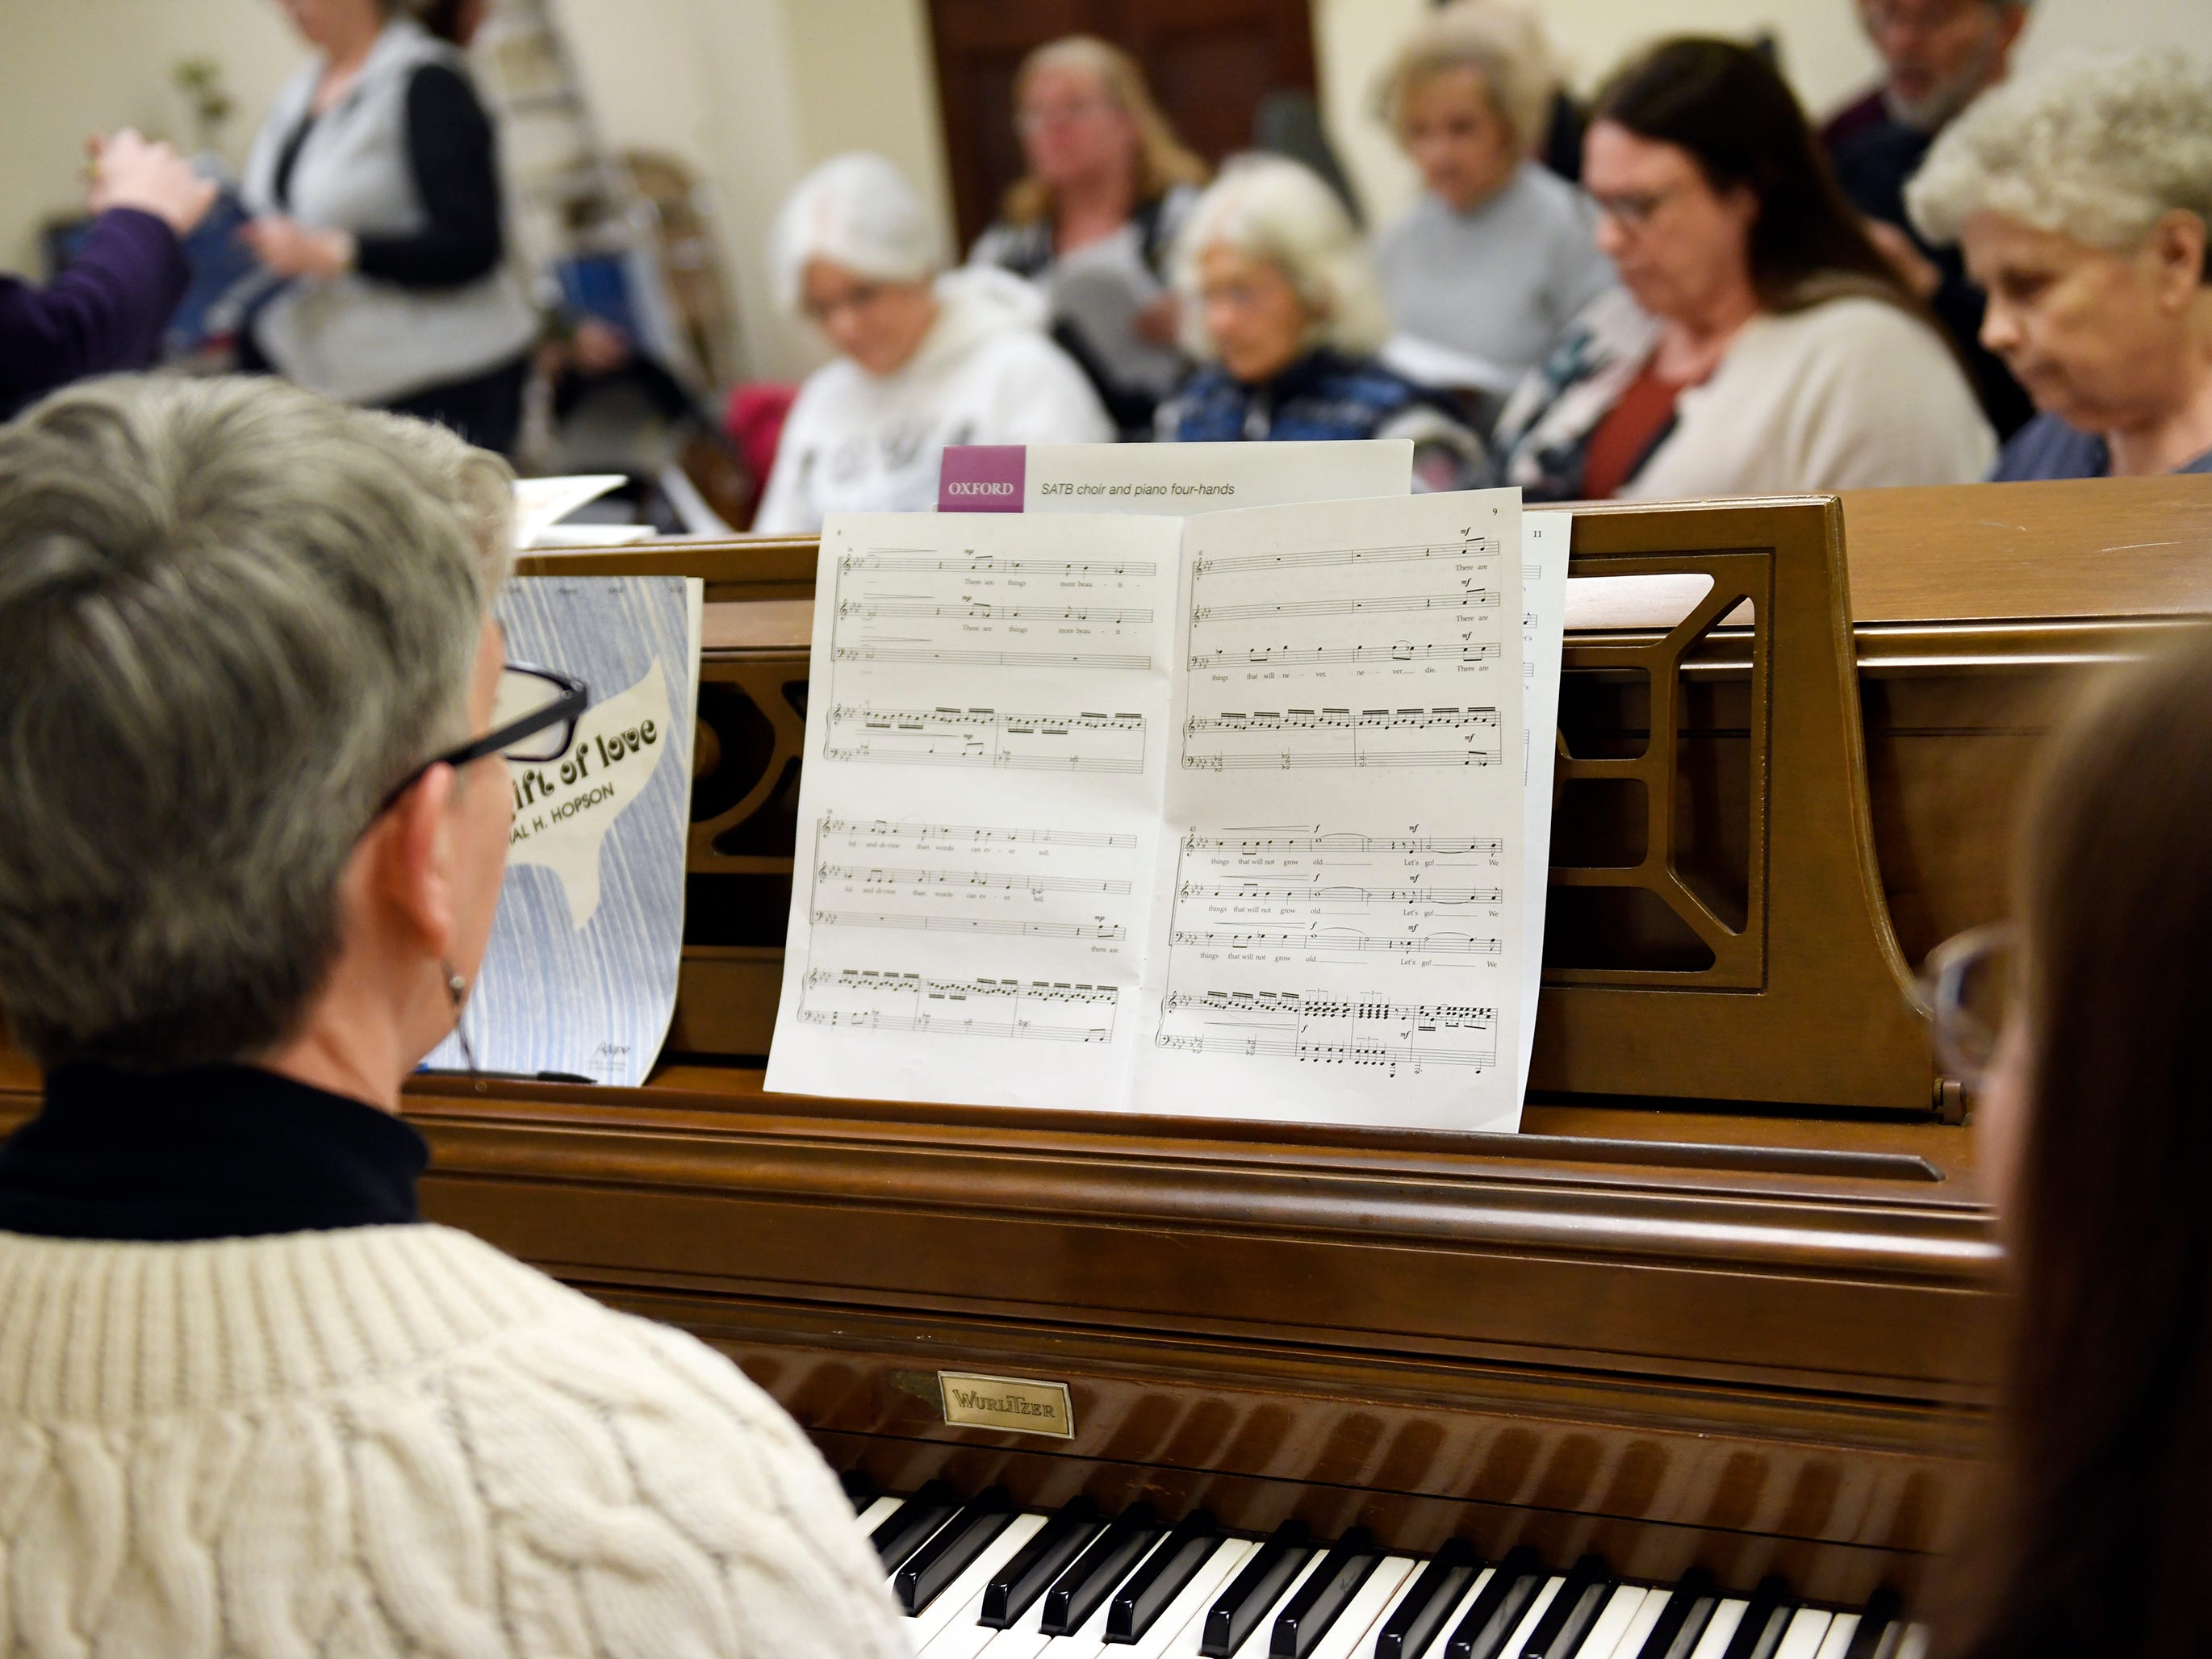 Gae Finch provides accompaniment on the piano during a rehearsal for the Singing Ambassadors at the Vineland Senior Center on Monday, April 1, 2019.